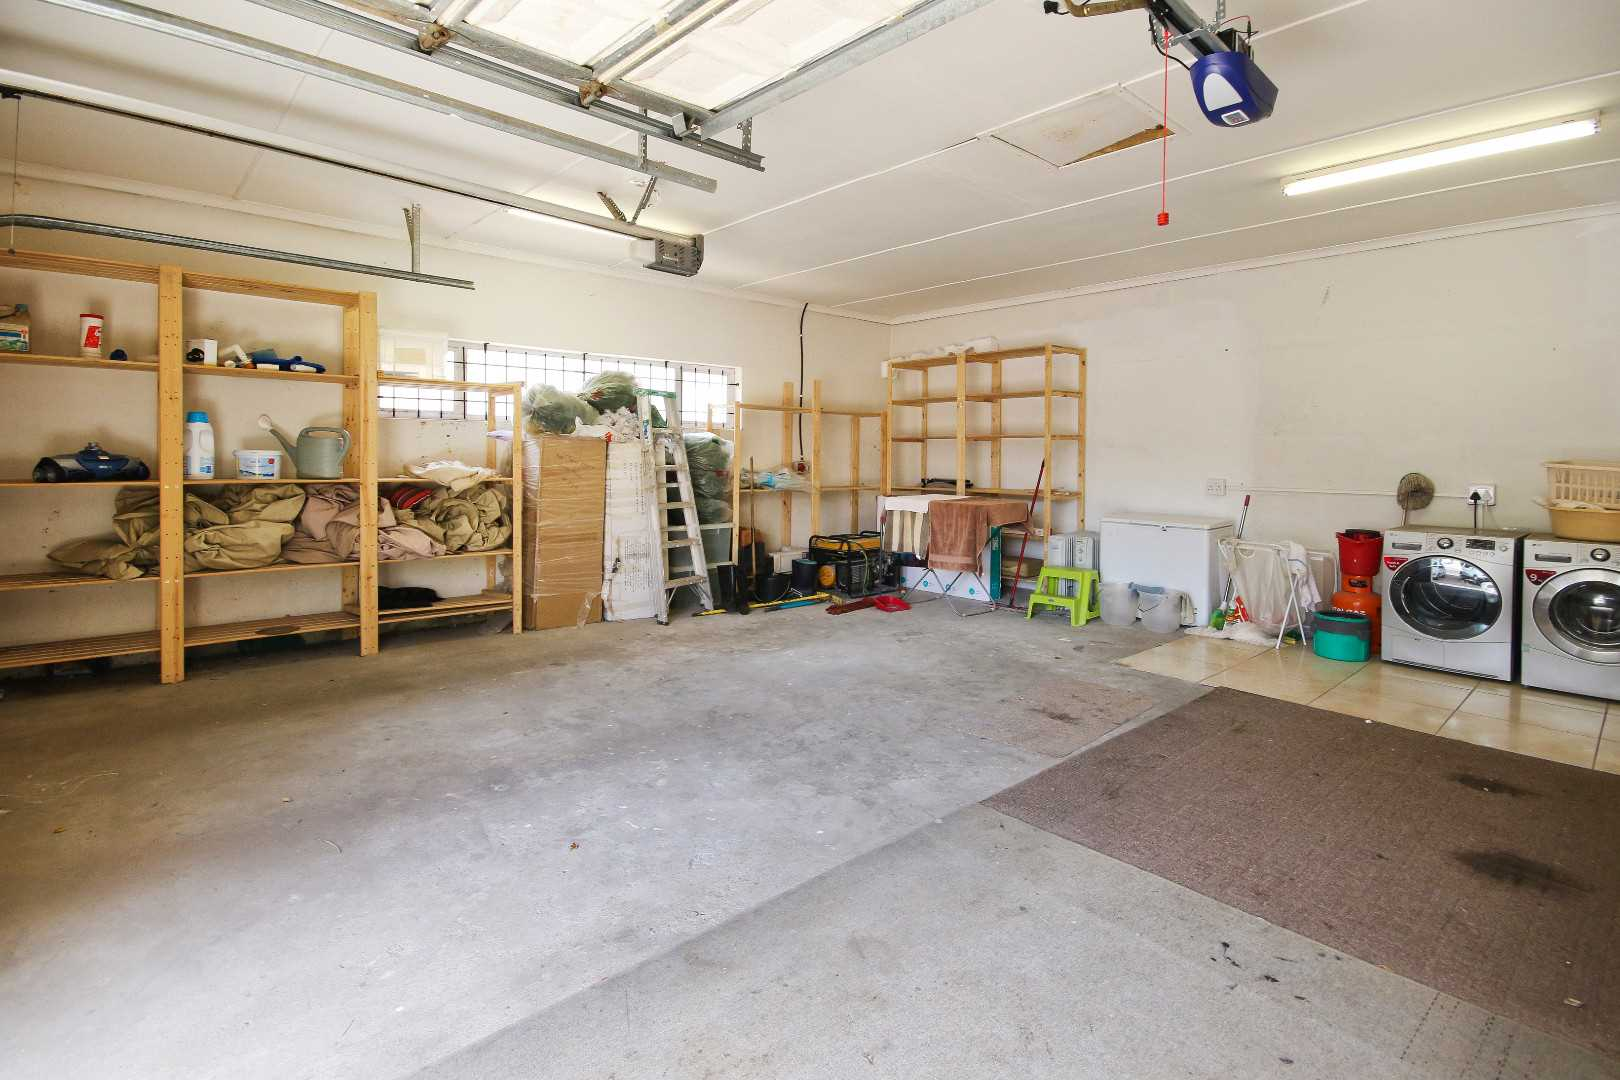 spacious double garage with automated sliding doors (2 units). Laundry in garage